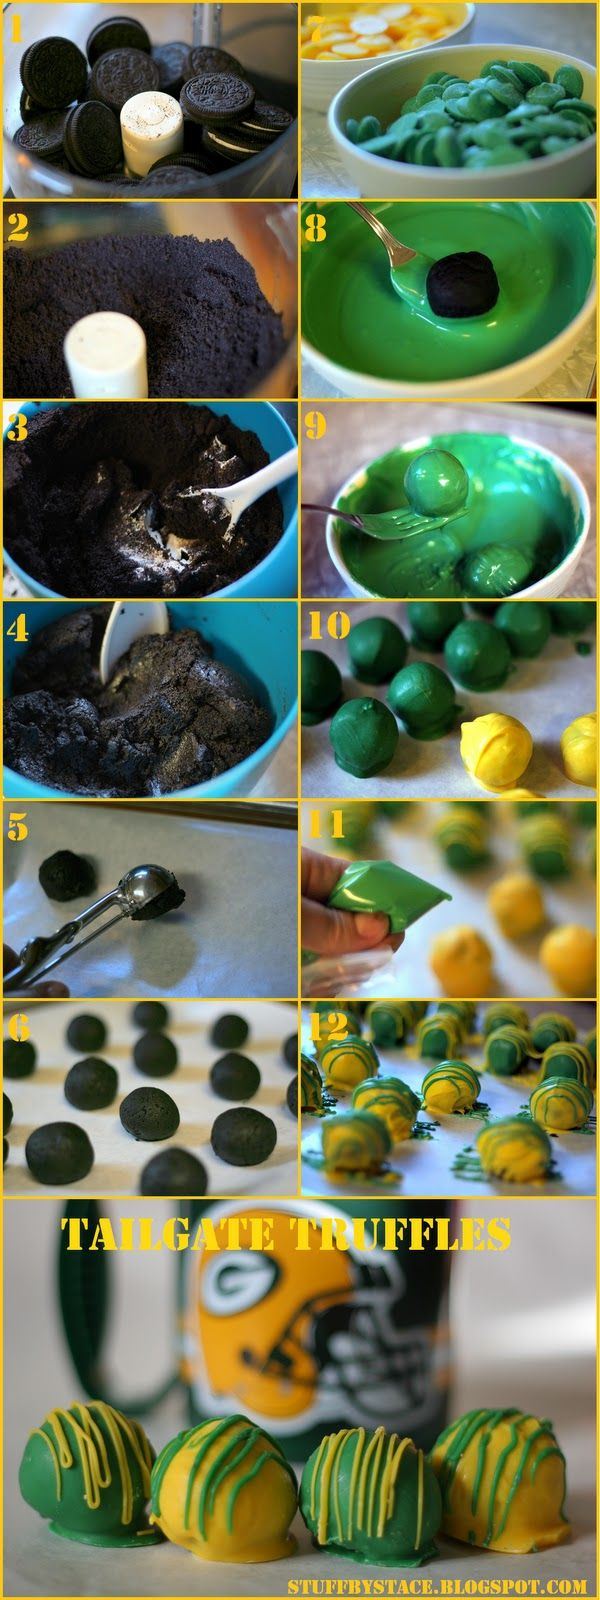 Tailgate truffles are an easy, and delicious, dessert! Add some spirit by changing the colors to match your team' colors!